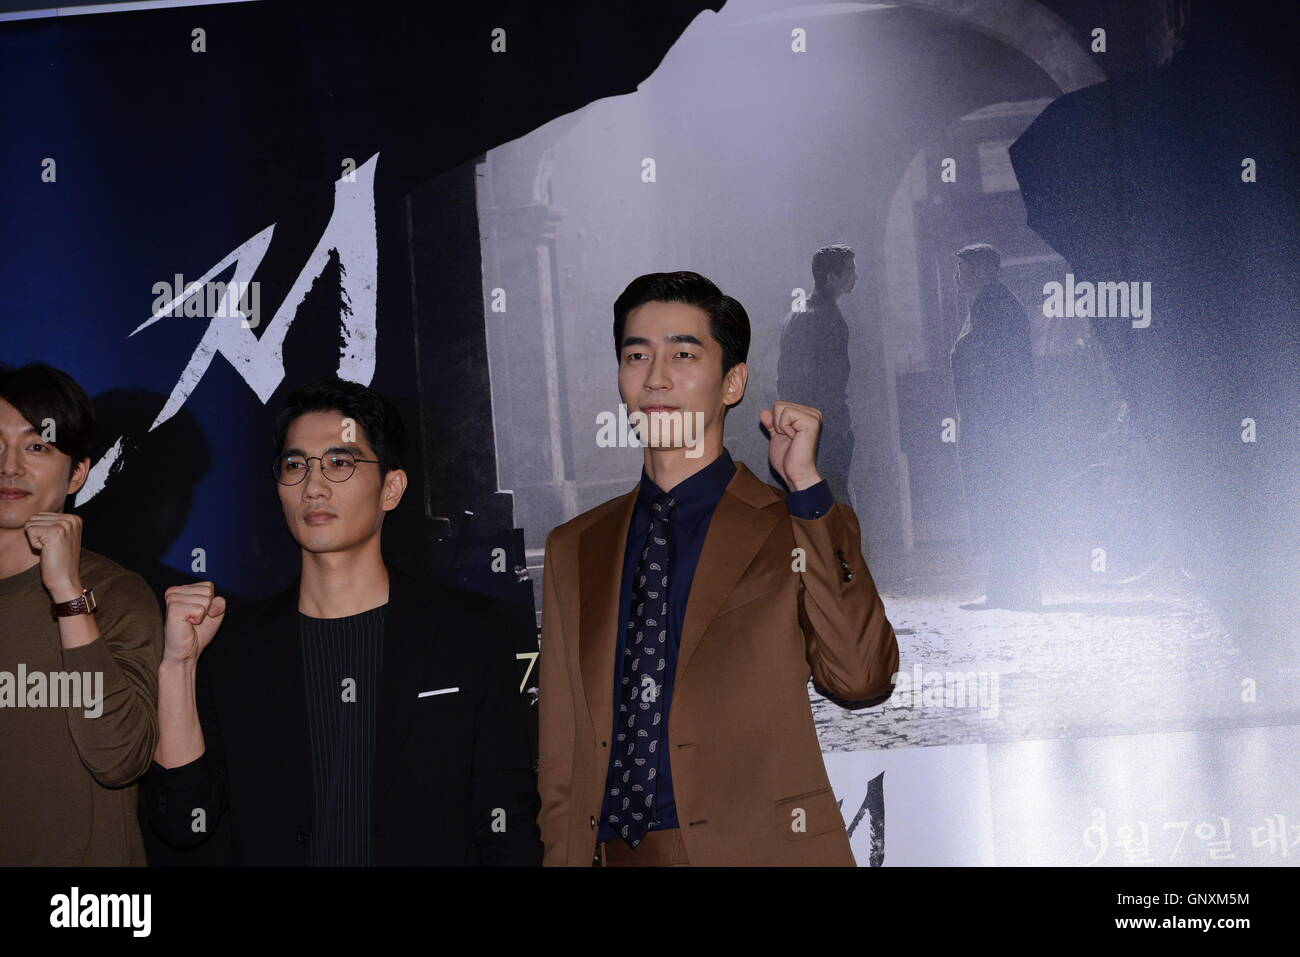 Lee Byung Ho Stock Photos & Lee Byung Ho Stock Images - Alamy